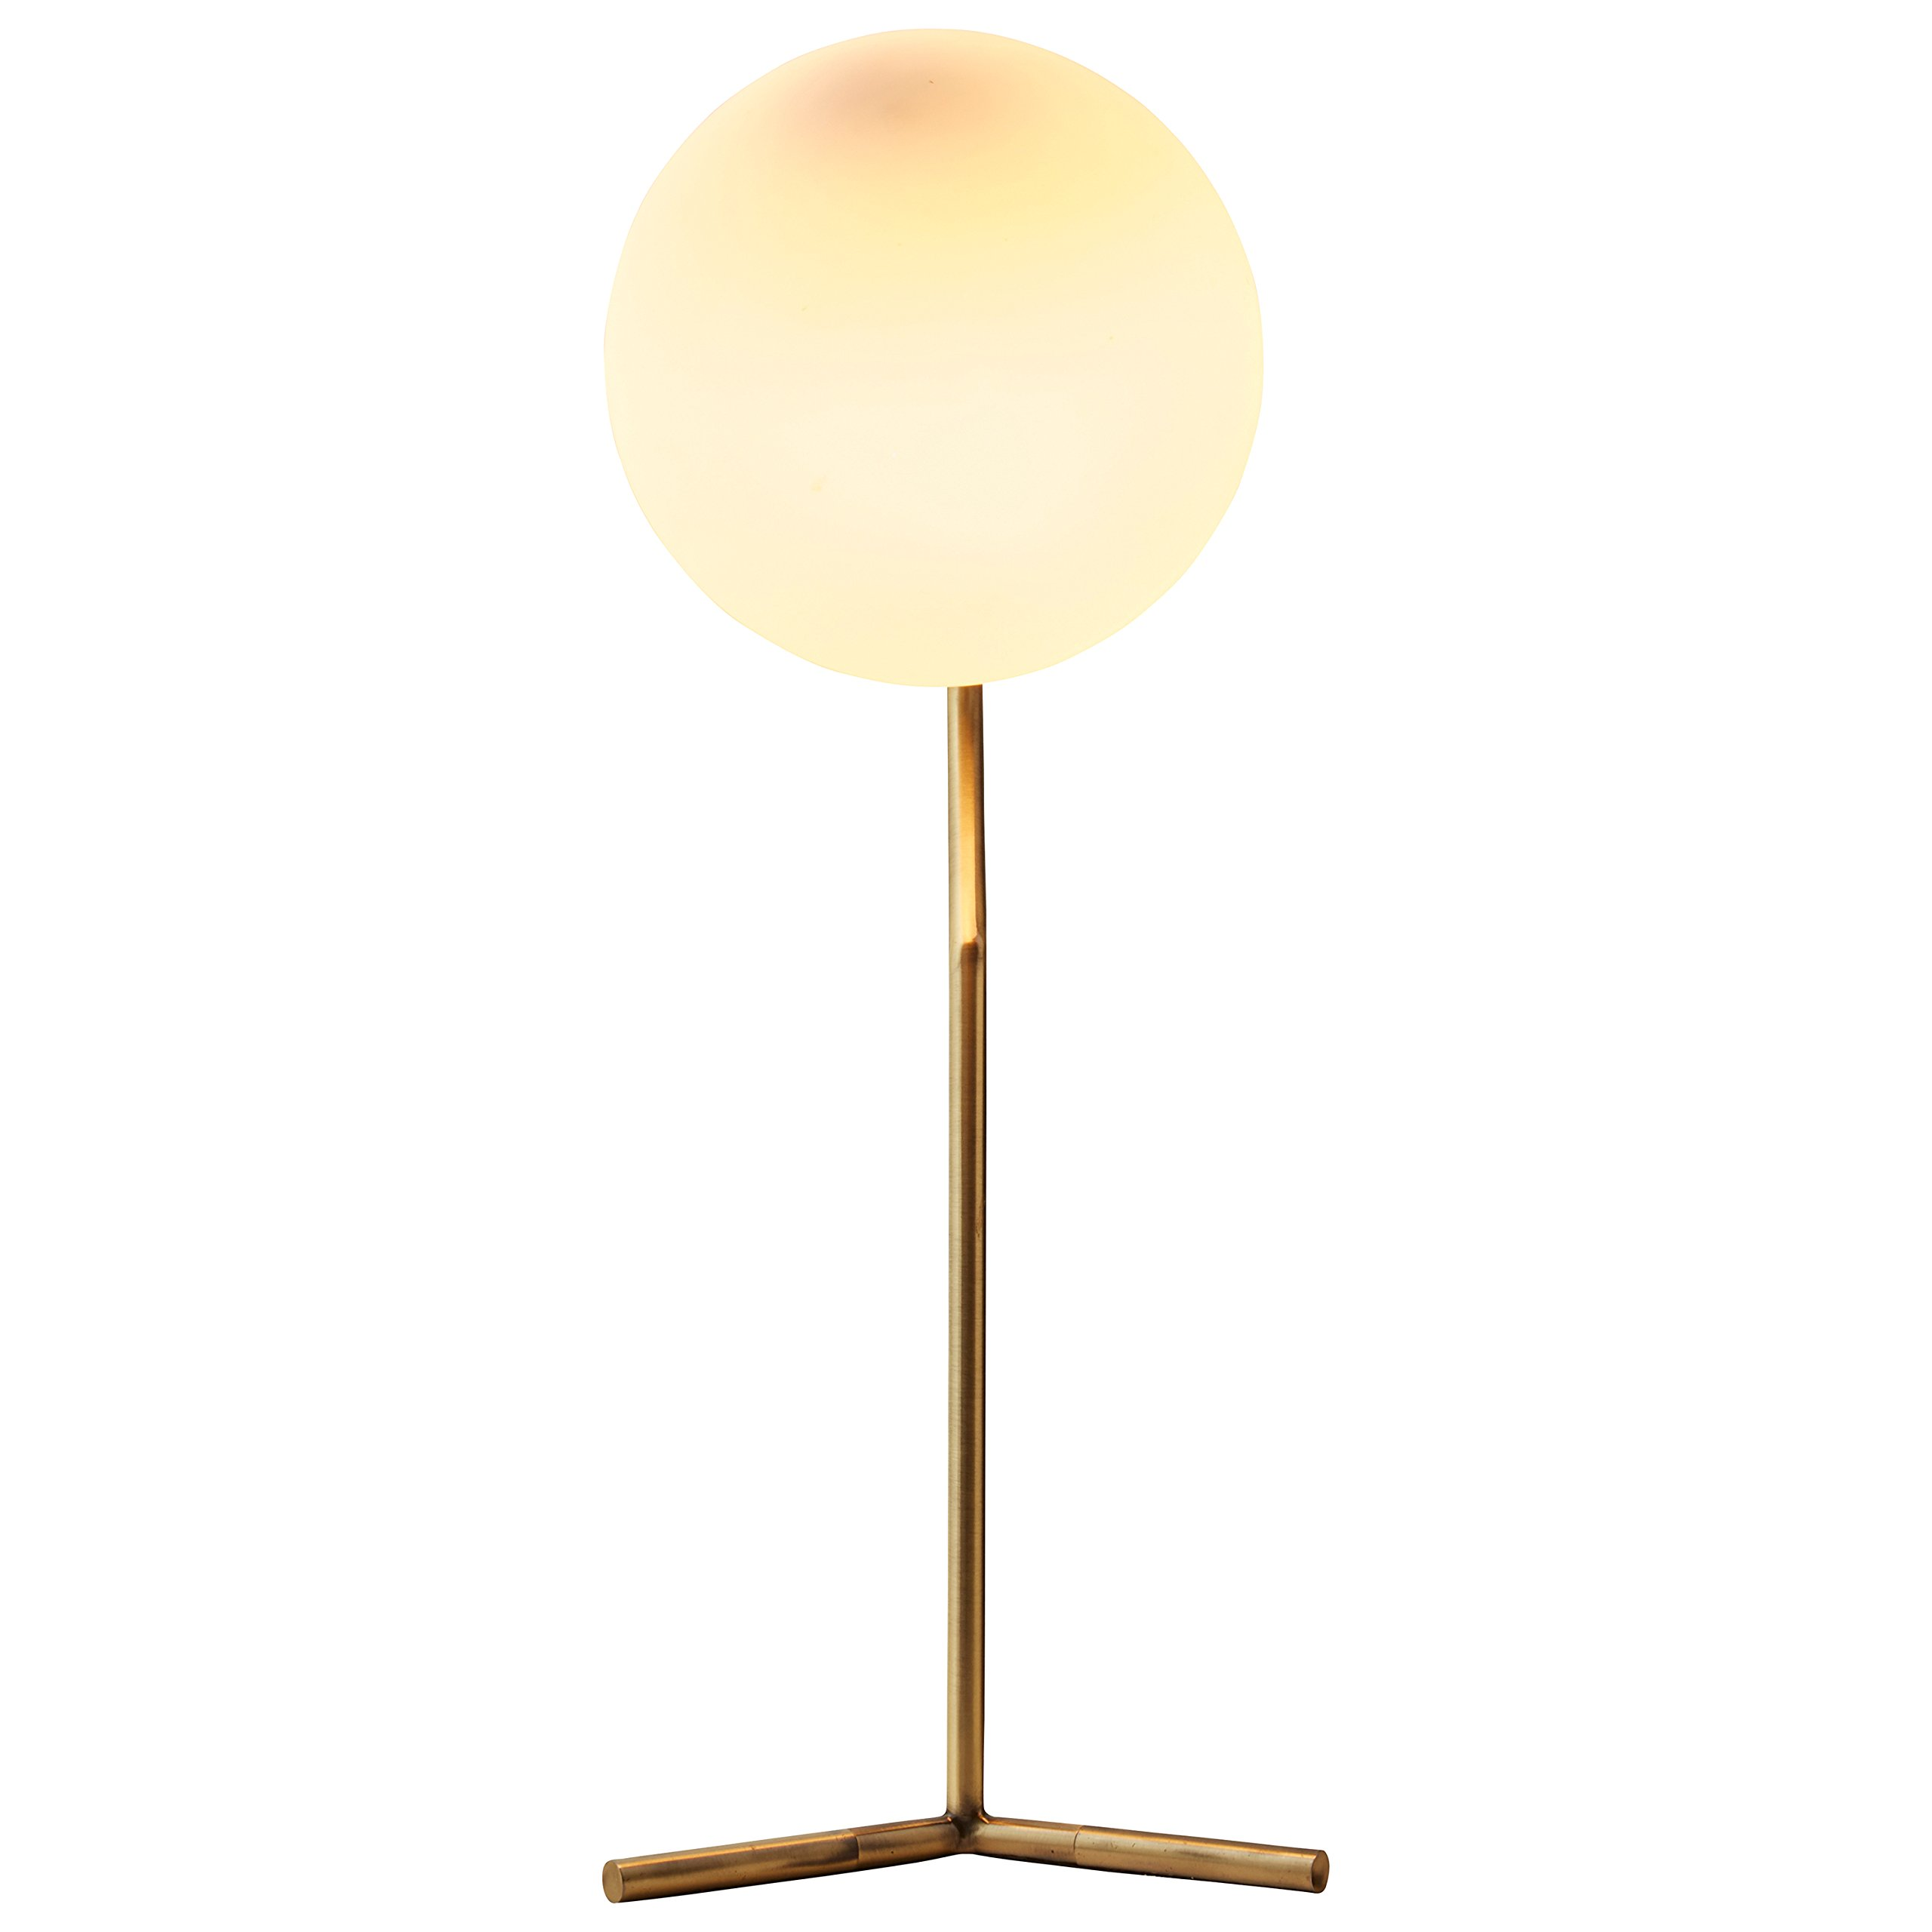 Rivet Glass Ball and Angled Metal Table Lamp with Bulb, 21.5''H, Brass by Rivet (Image #5)